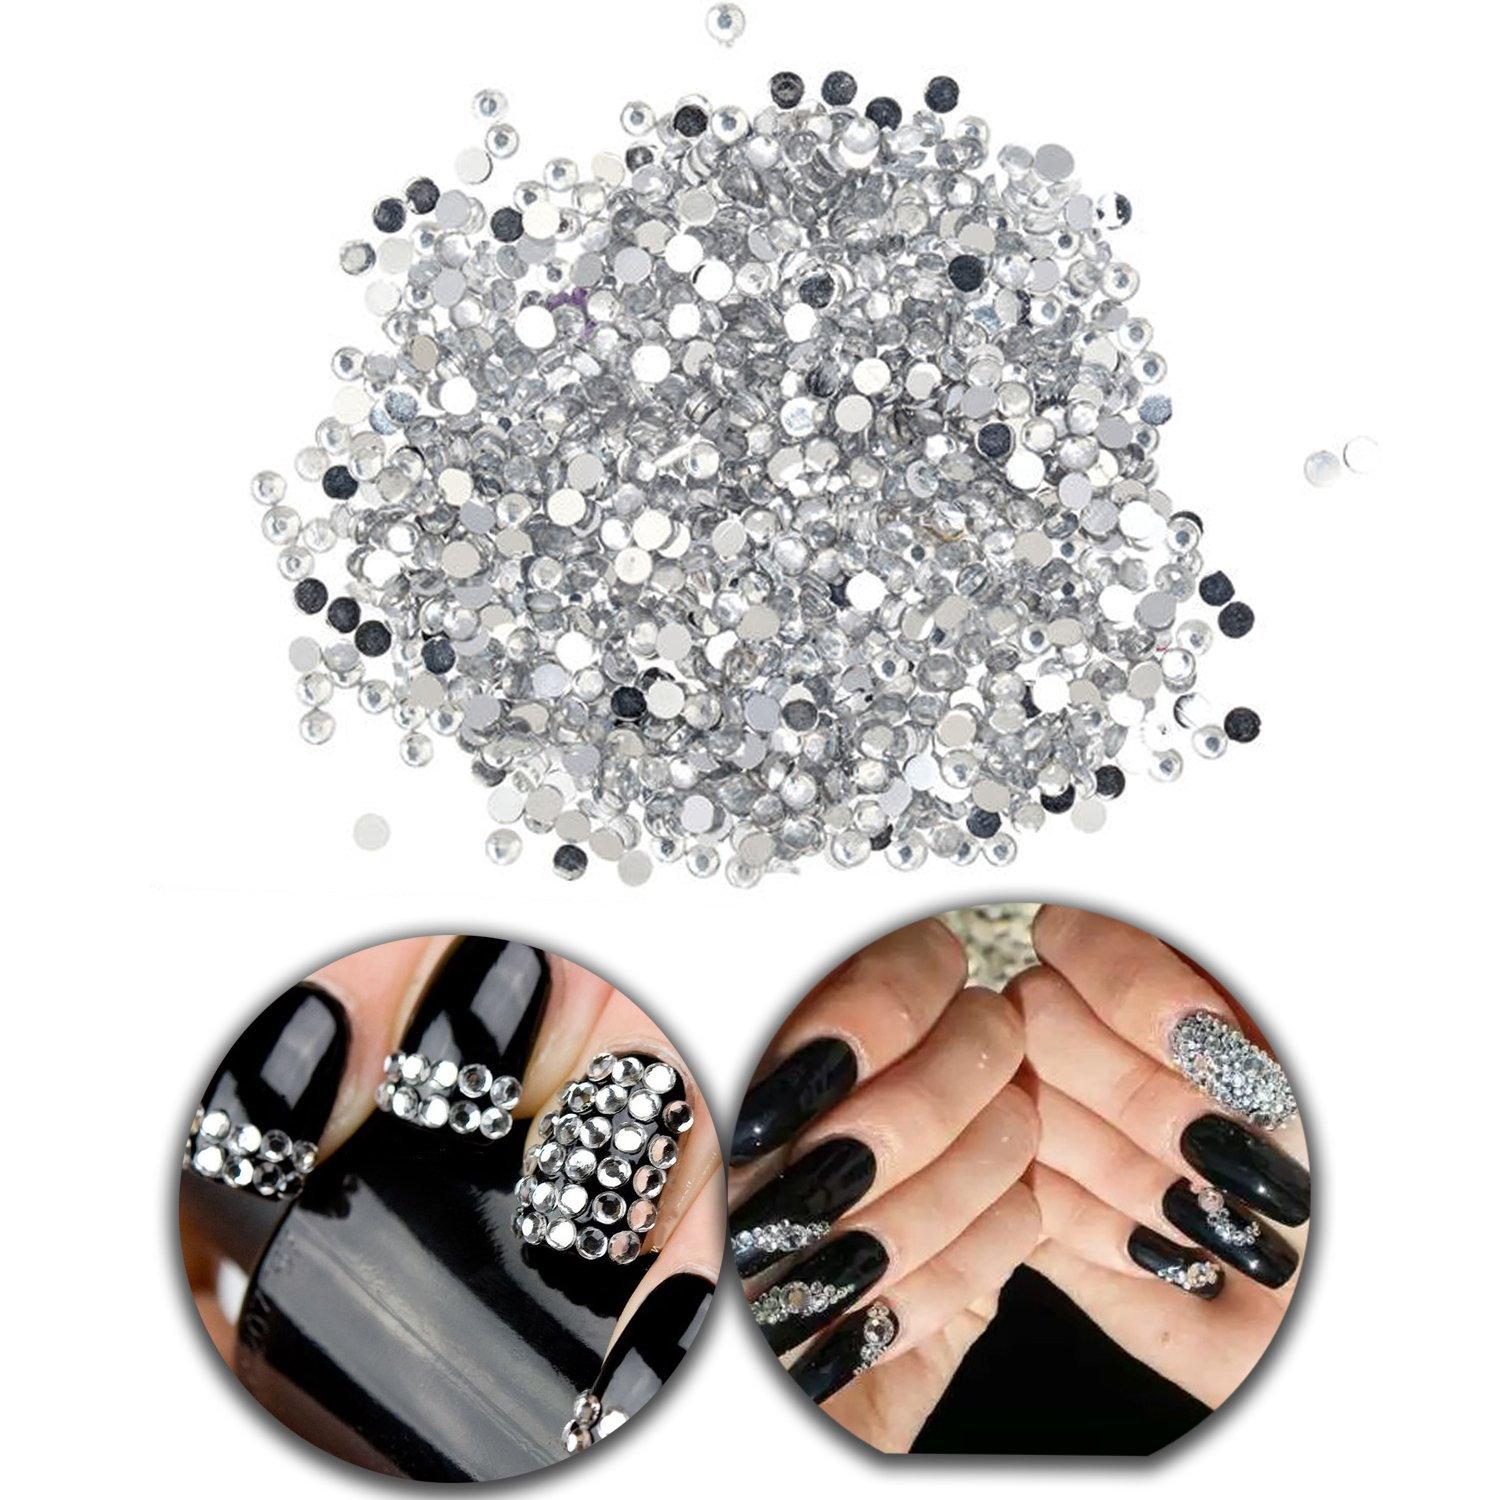 3D Nail Art Manicure Designs Pack Bag With 1440 Nails 3mm Crystals Flat Back Rhinestones Gems Jewels In Silver Colours VAGASHOP